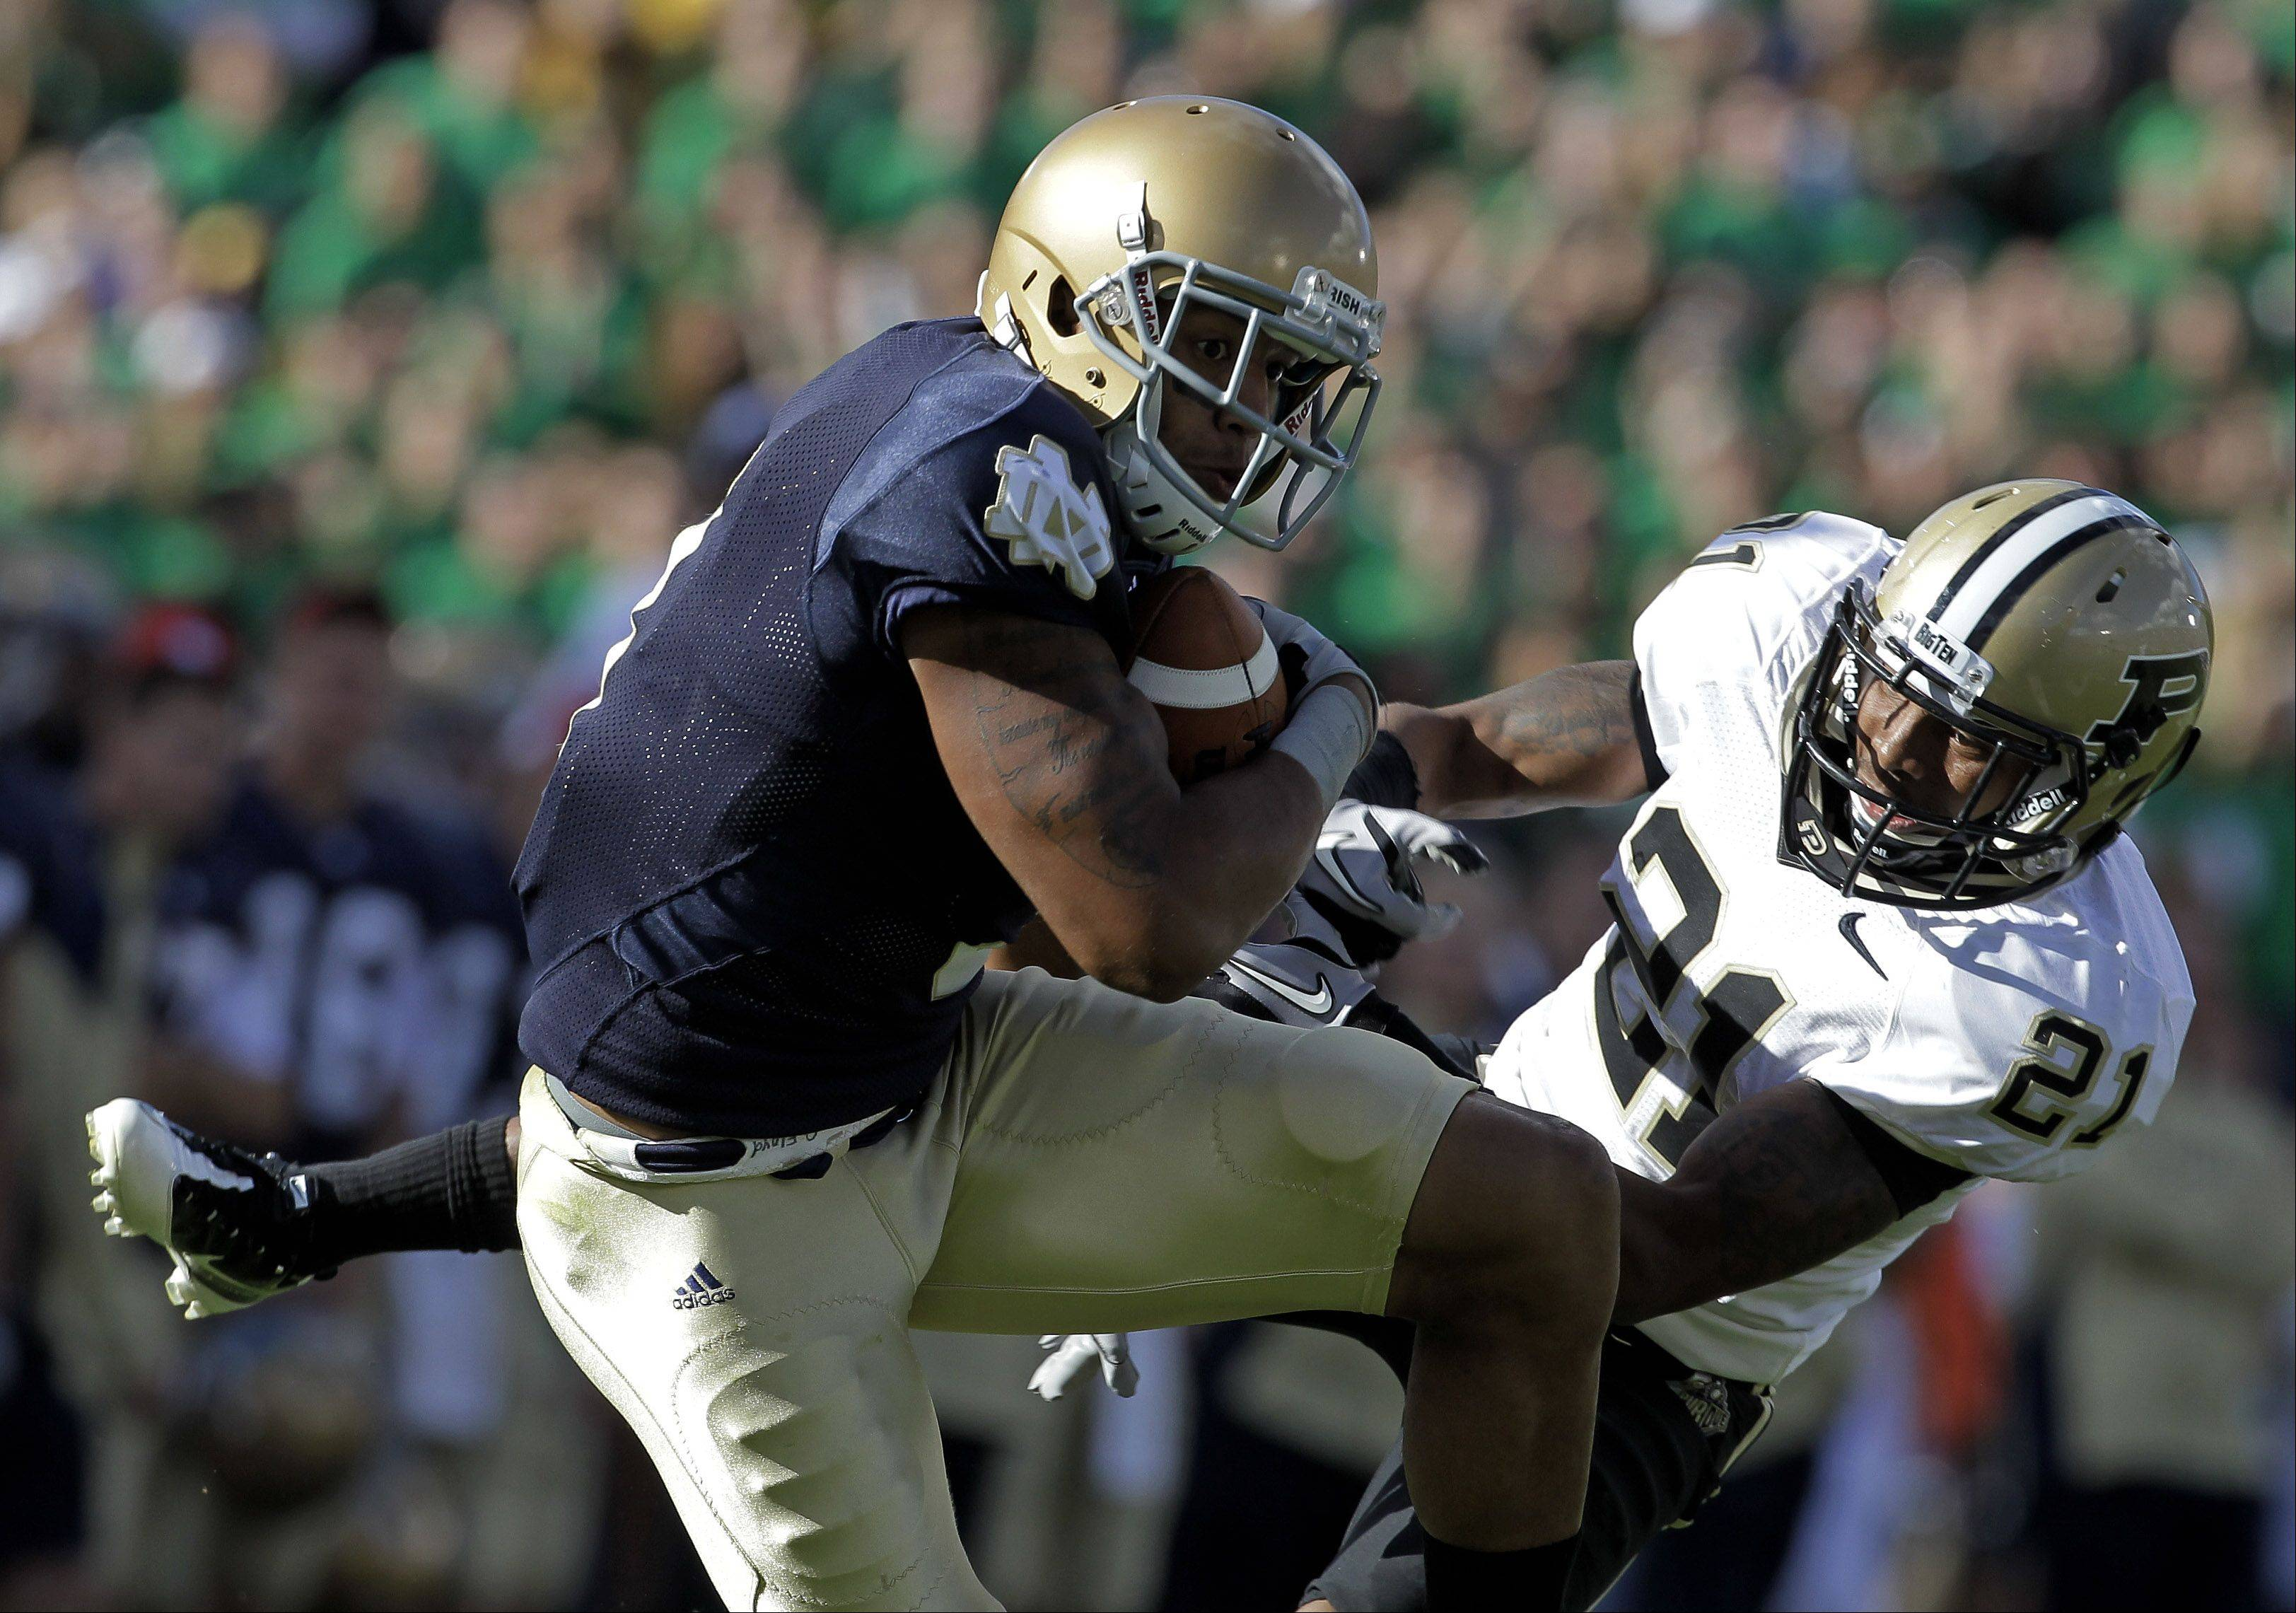 Notre Dame's Floyd would be great catch